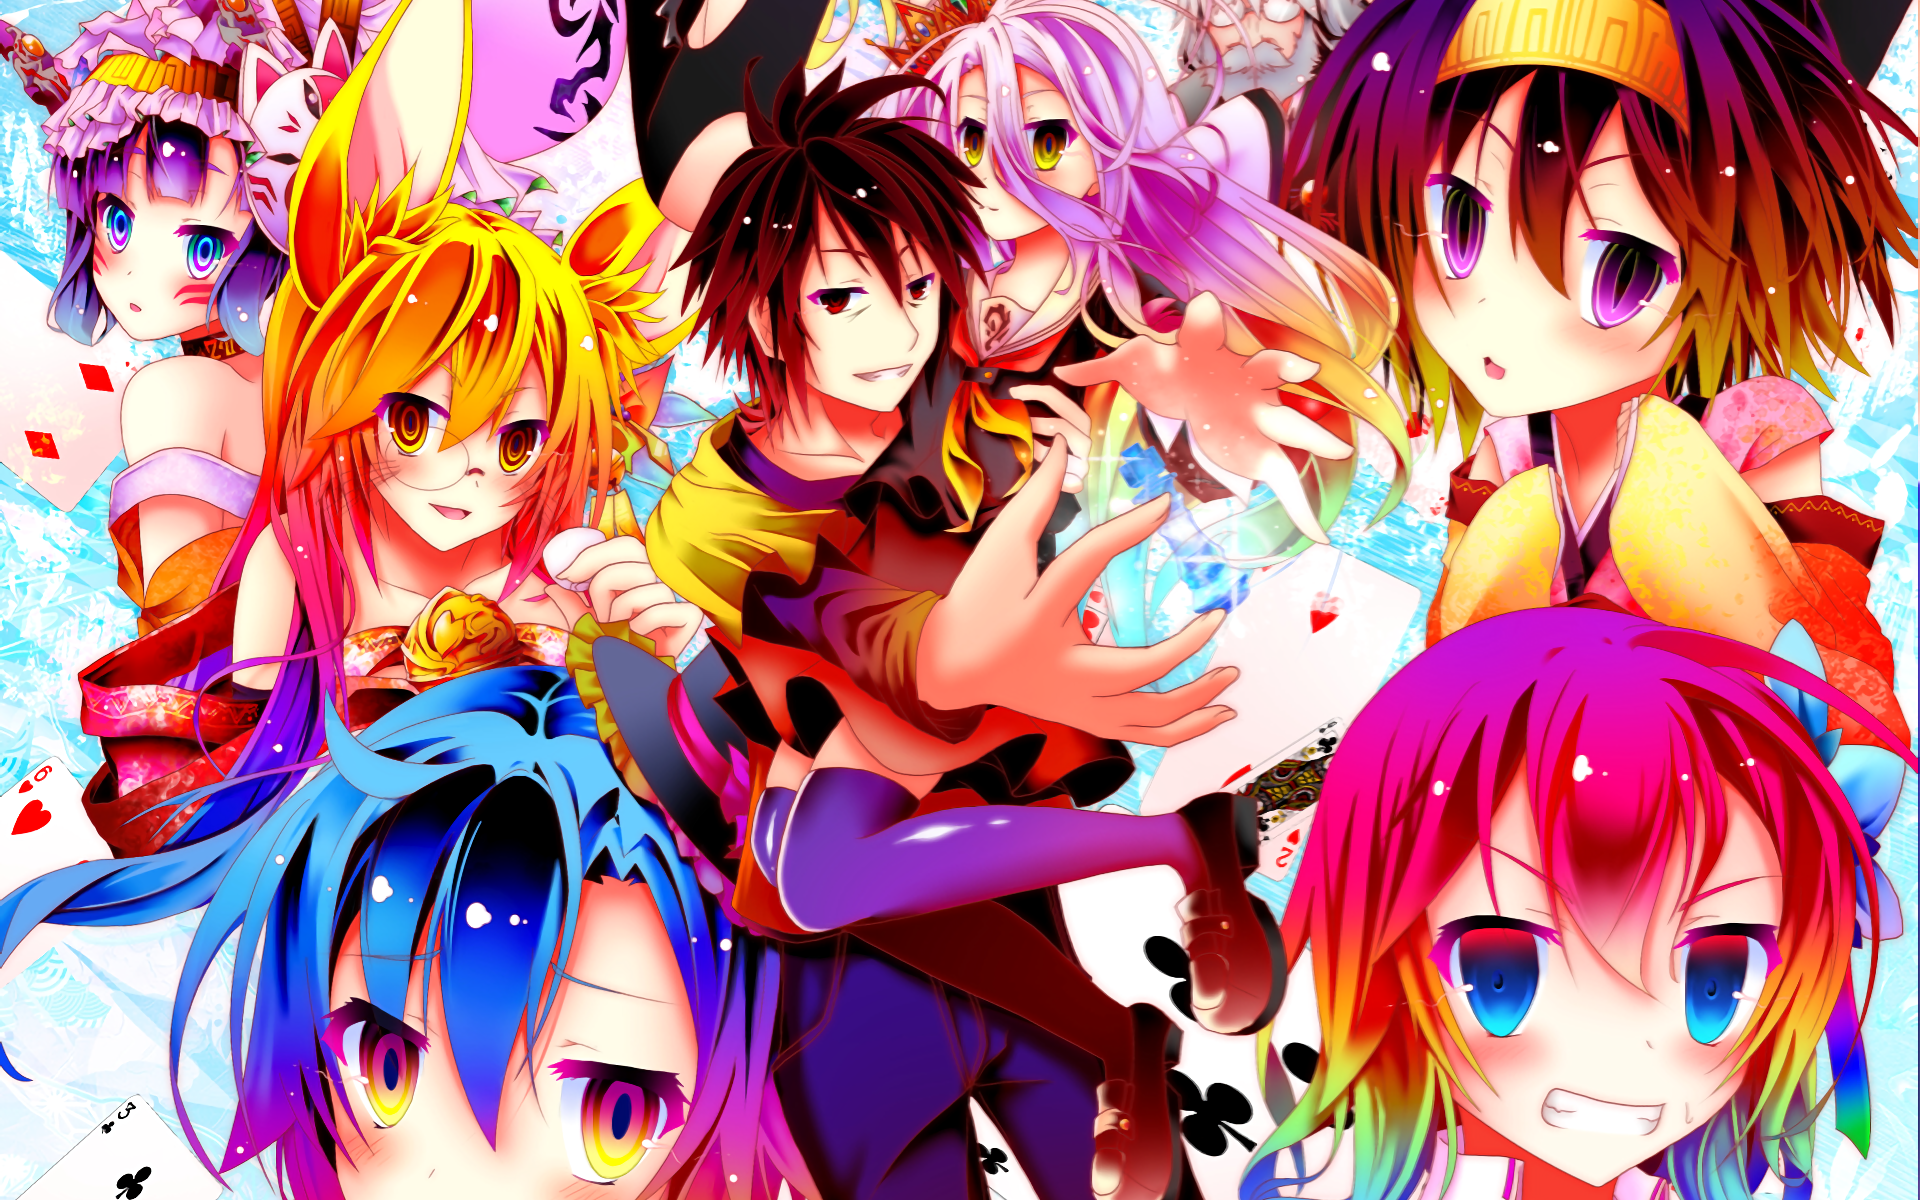 No Game No Life HD Wallpaper | Background Image | 1920x1200 | ID:818431 - Wallpaper Abyss